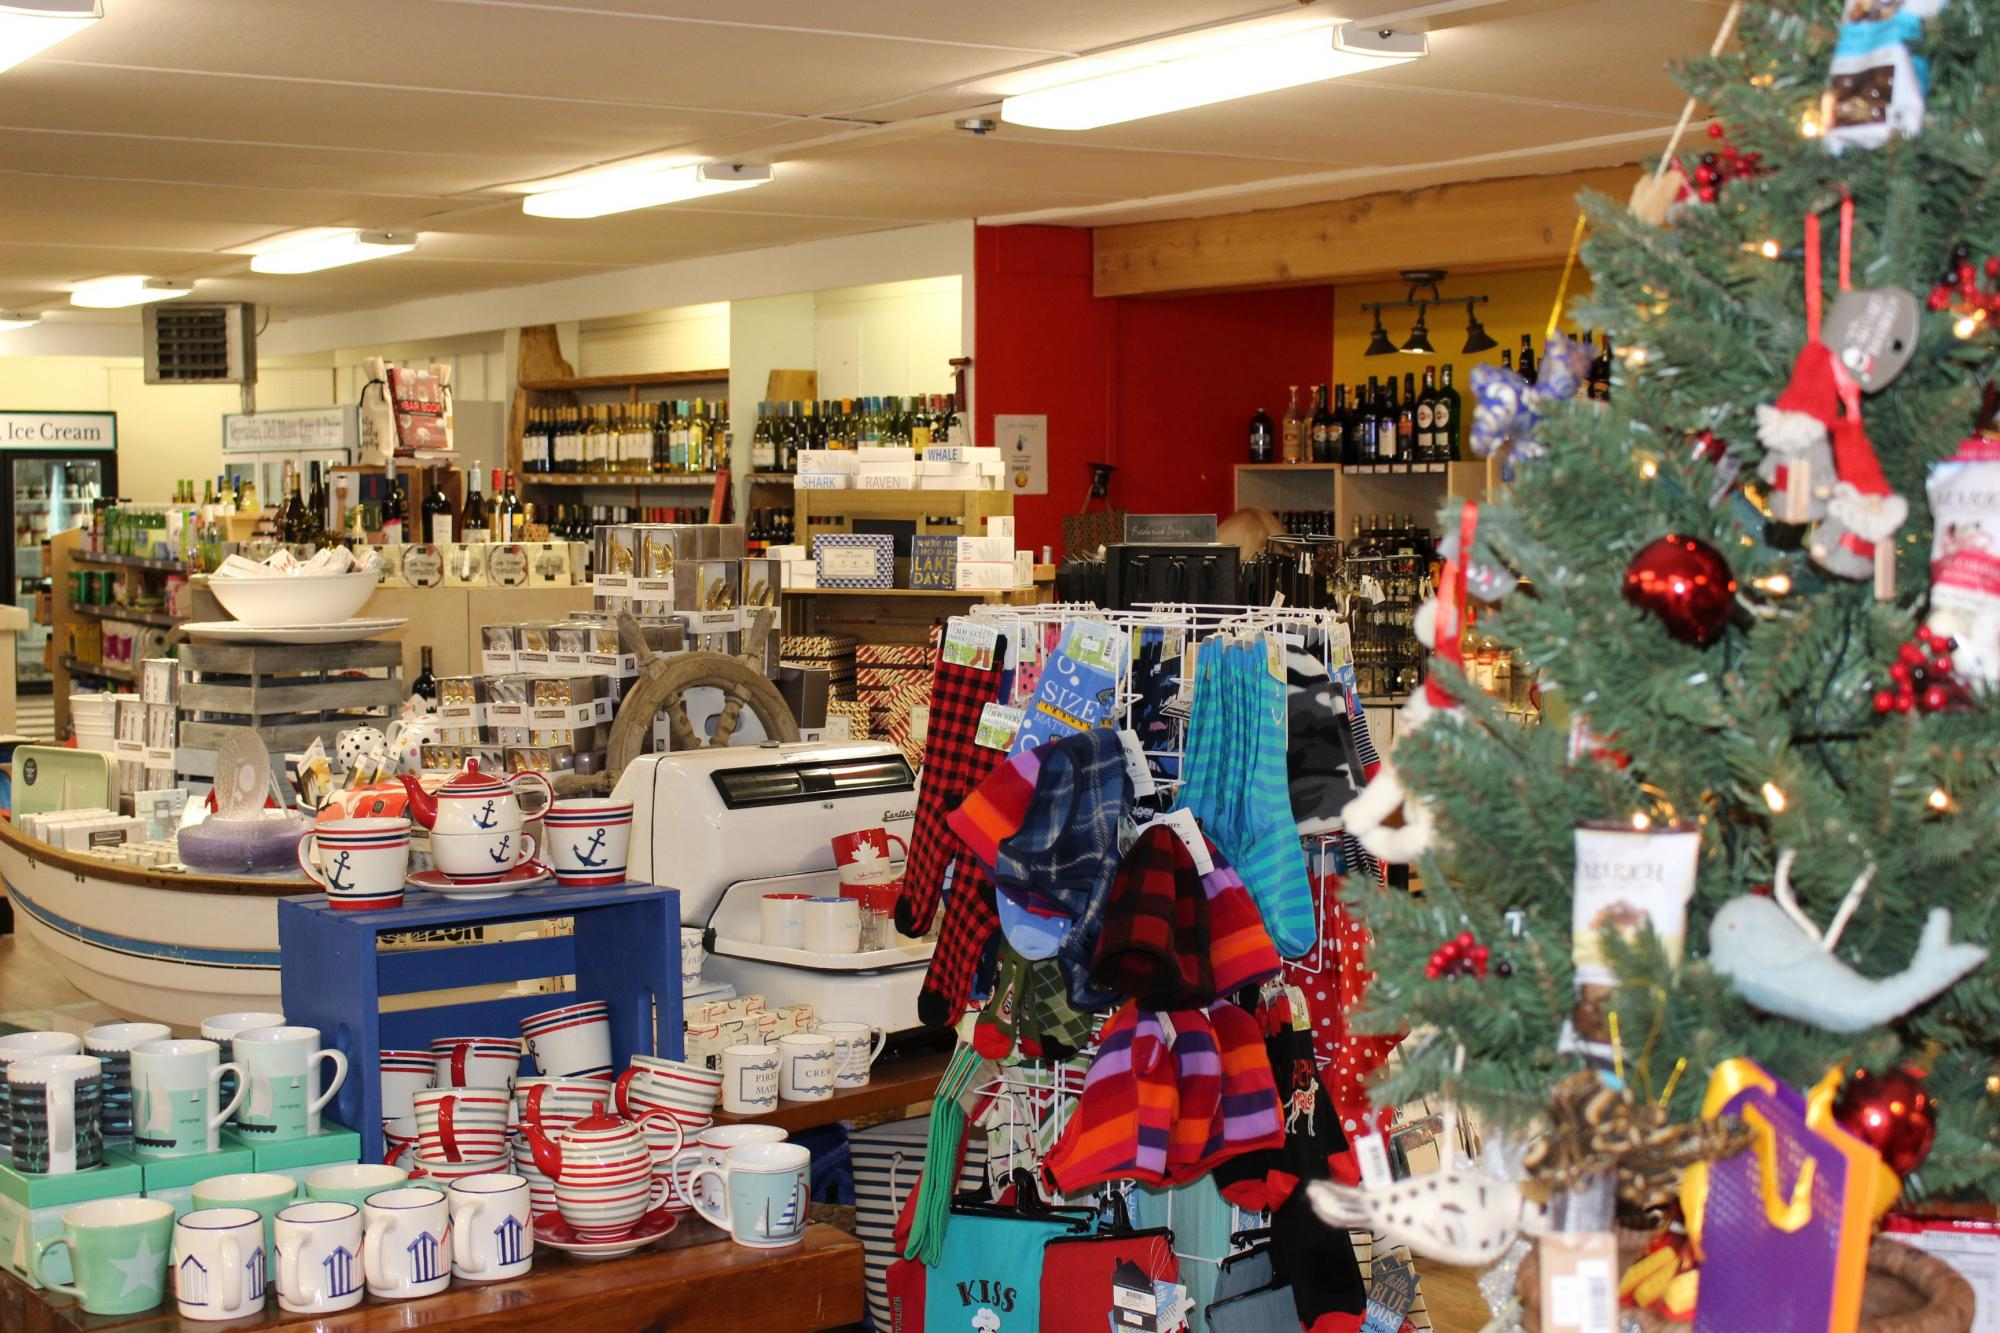 Grandmas Christmas Bazaar Vancouver 2021 When It Comes To Christmas Pender Harbour Has It In The Boat Festivalseekers